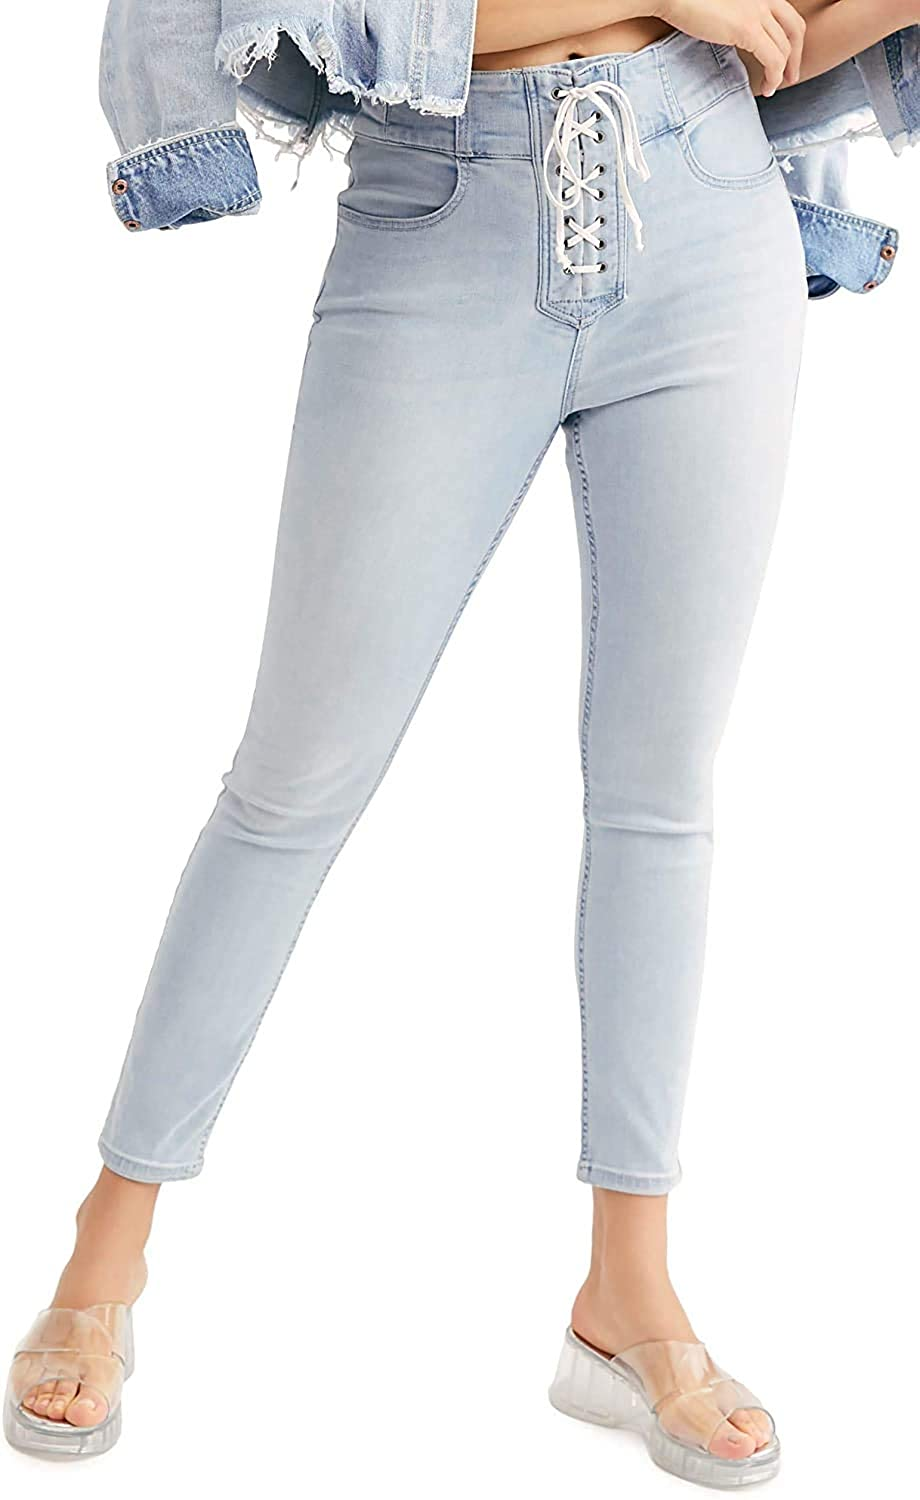 Free People Women's CRVY Lovers Knot High Waist Lace-Up Skinny Jeans in Light Blue Size 28